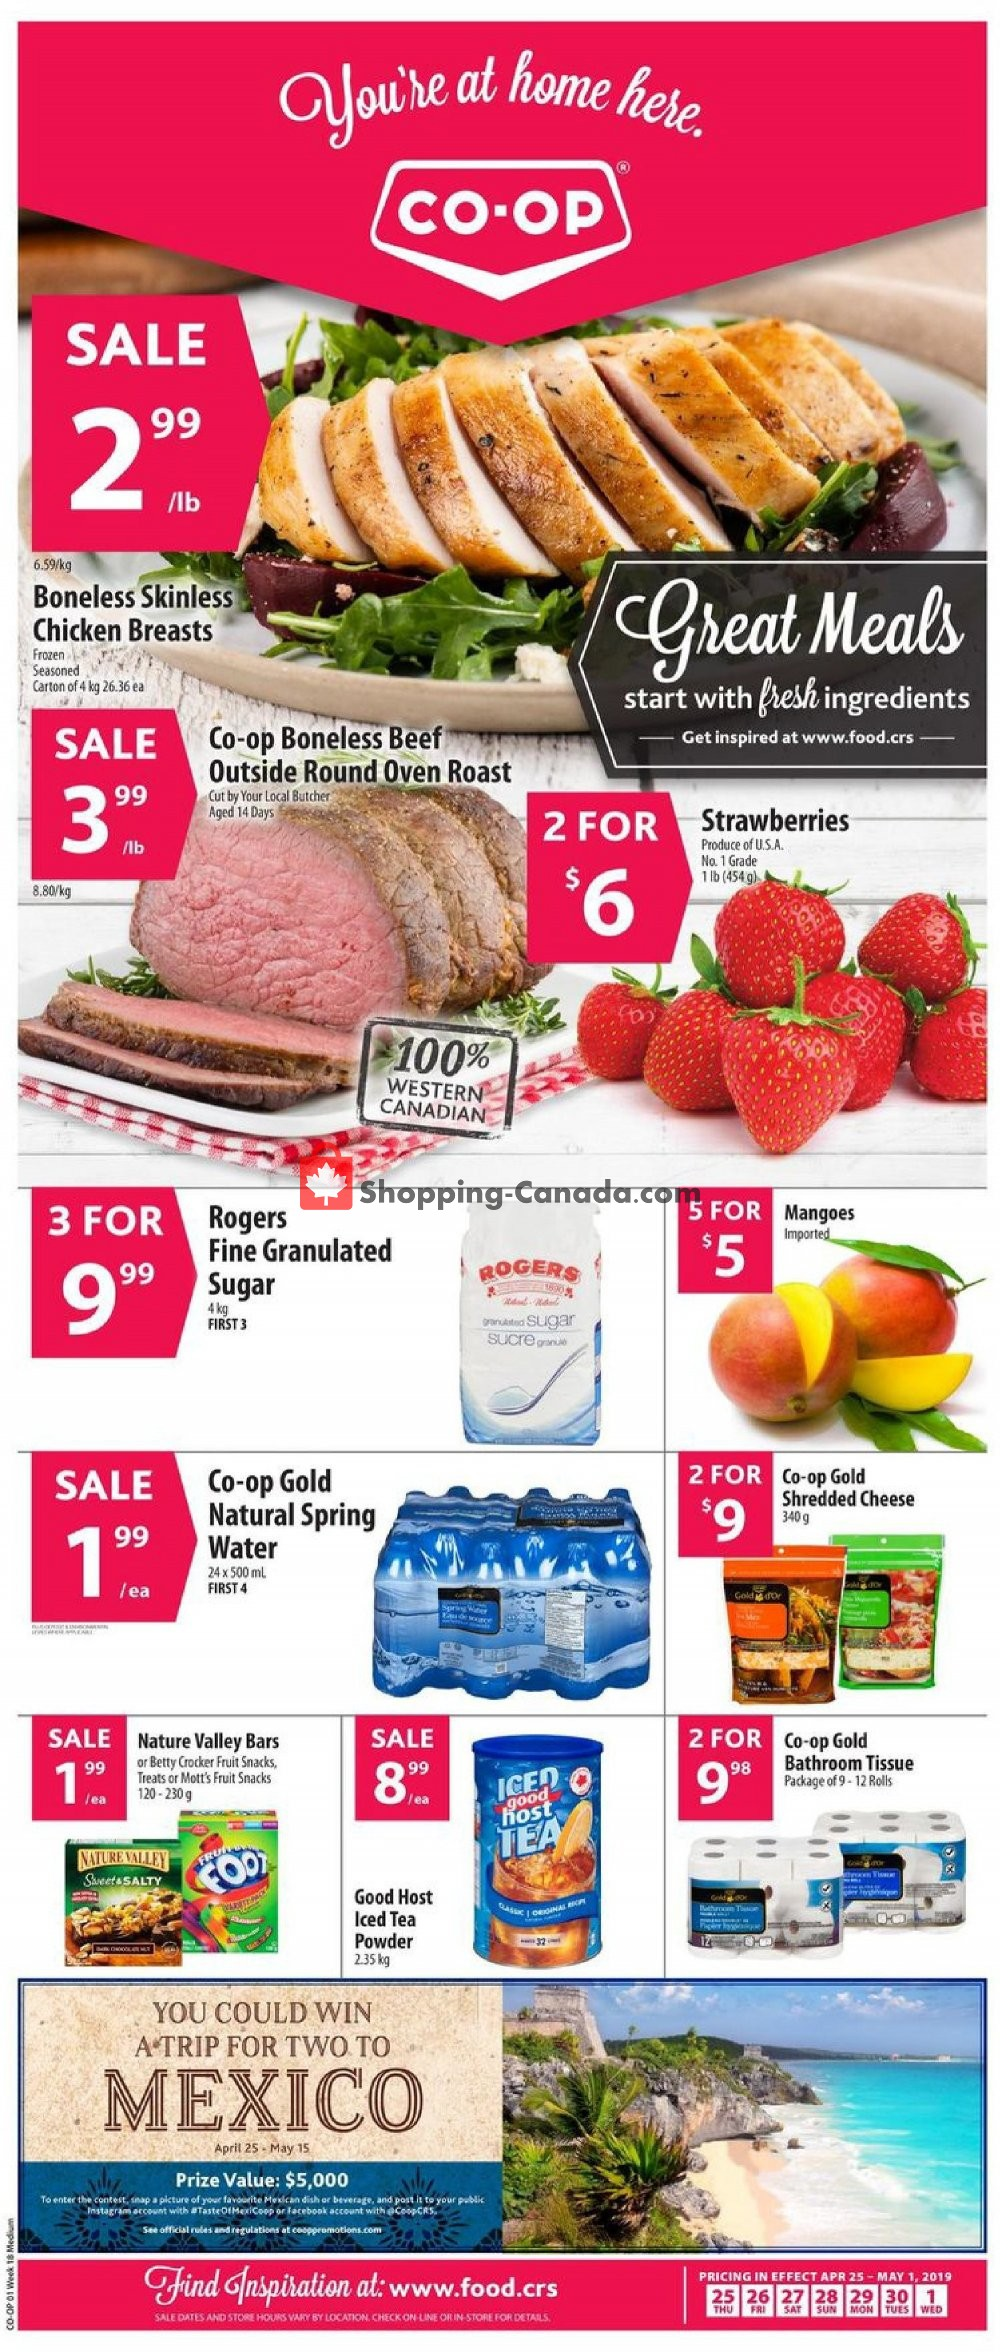 Flyer Co-op Canada - from Thursday April 25, 2019 to Wednesday May 1, 2019